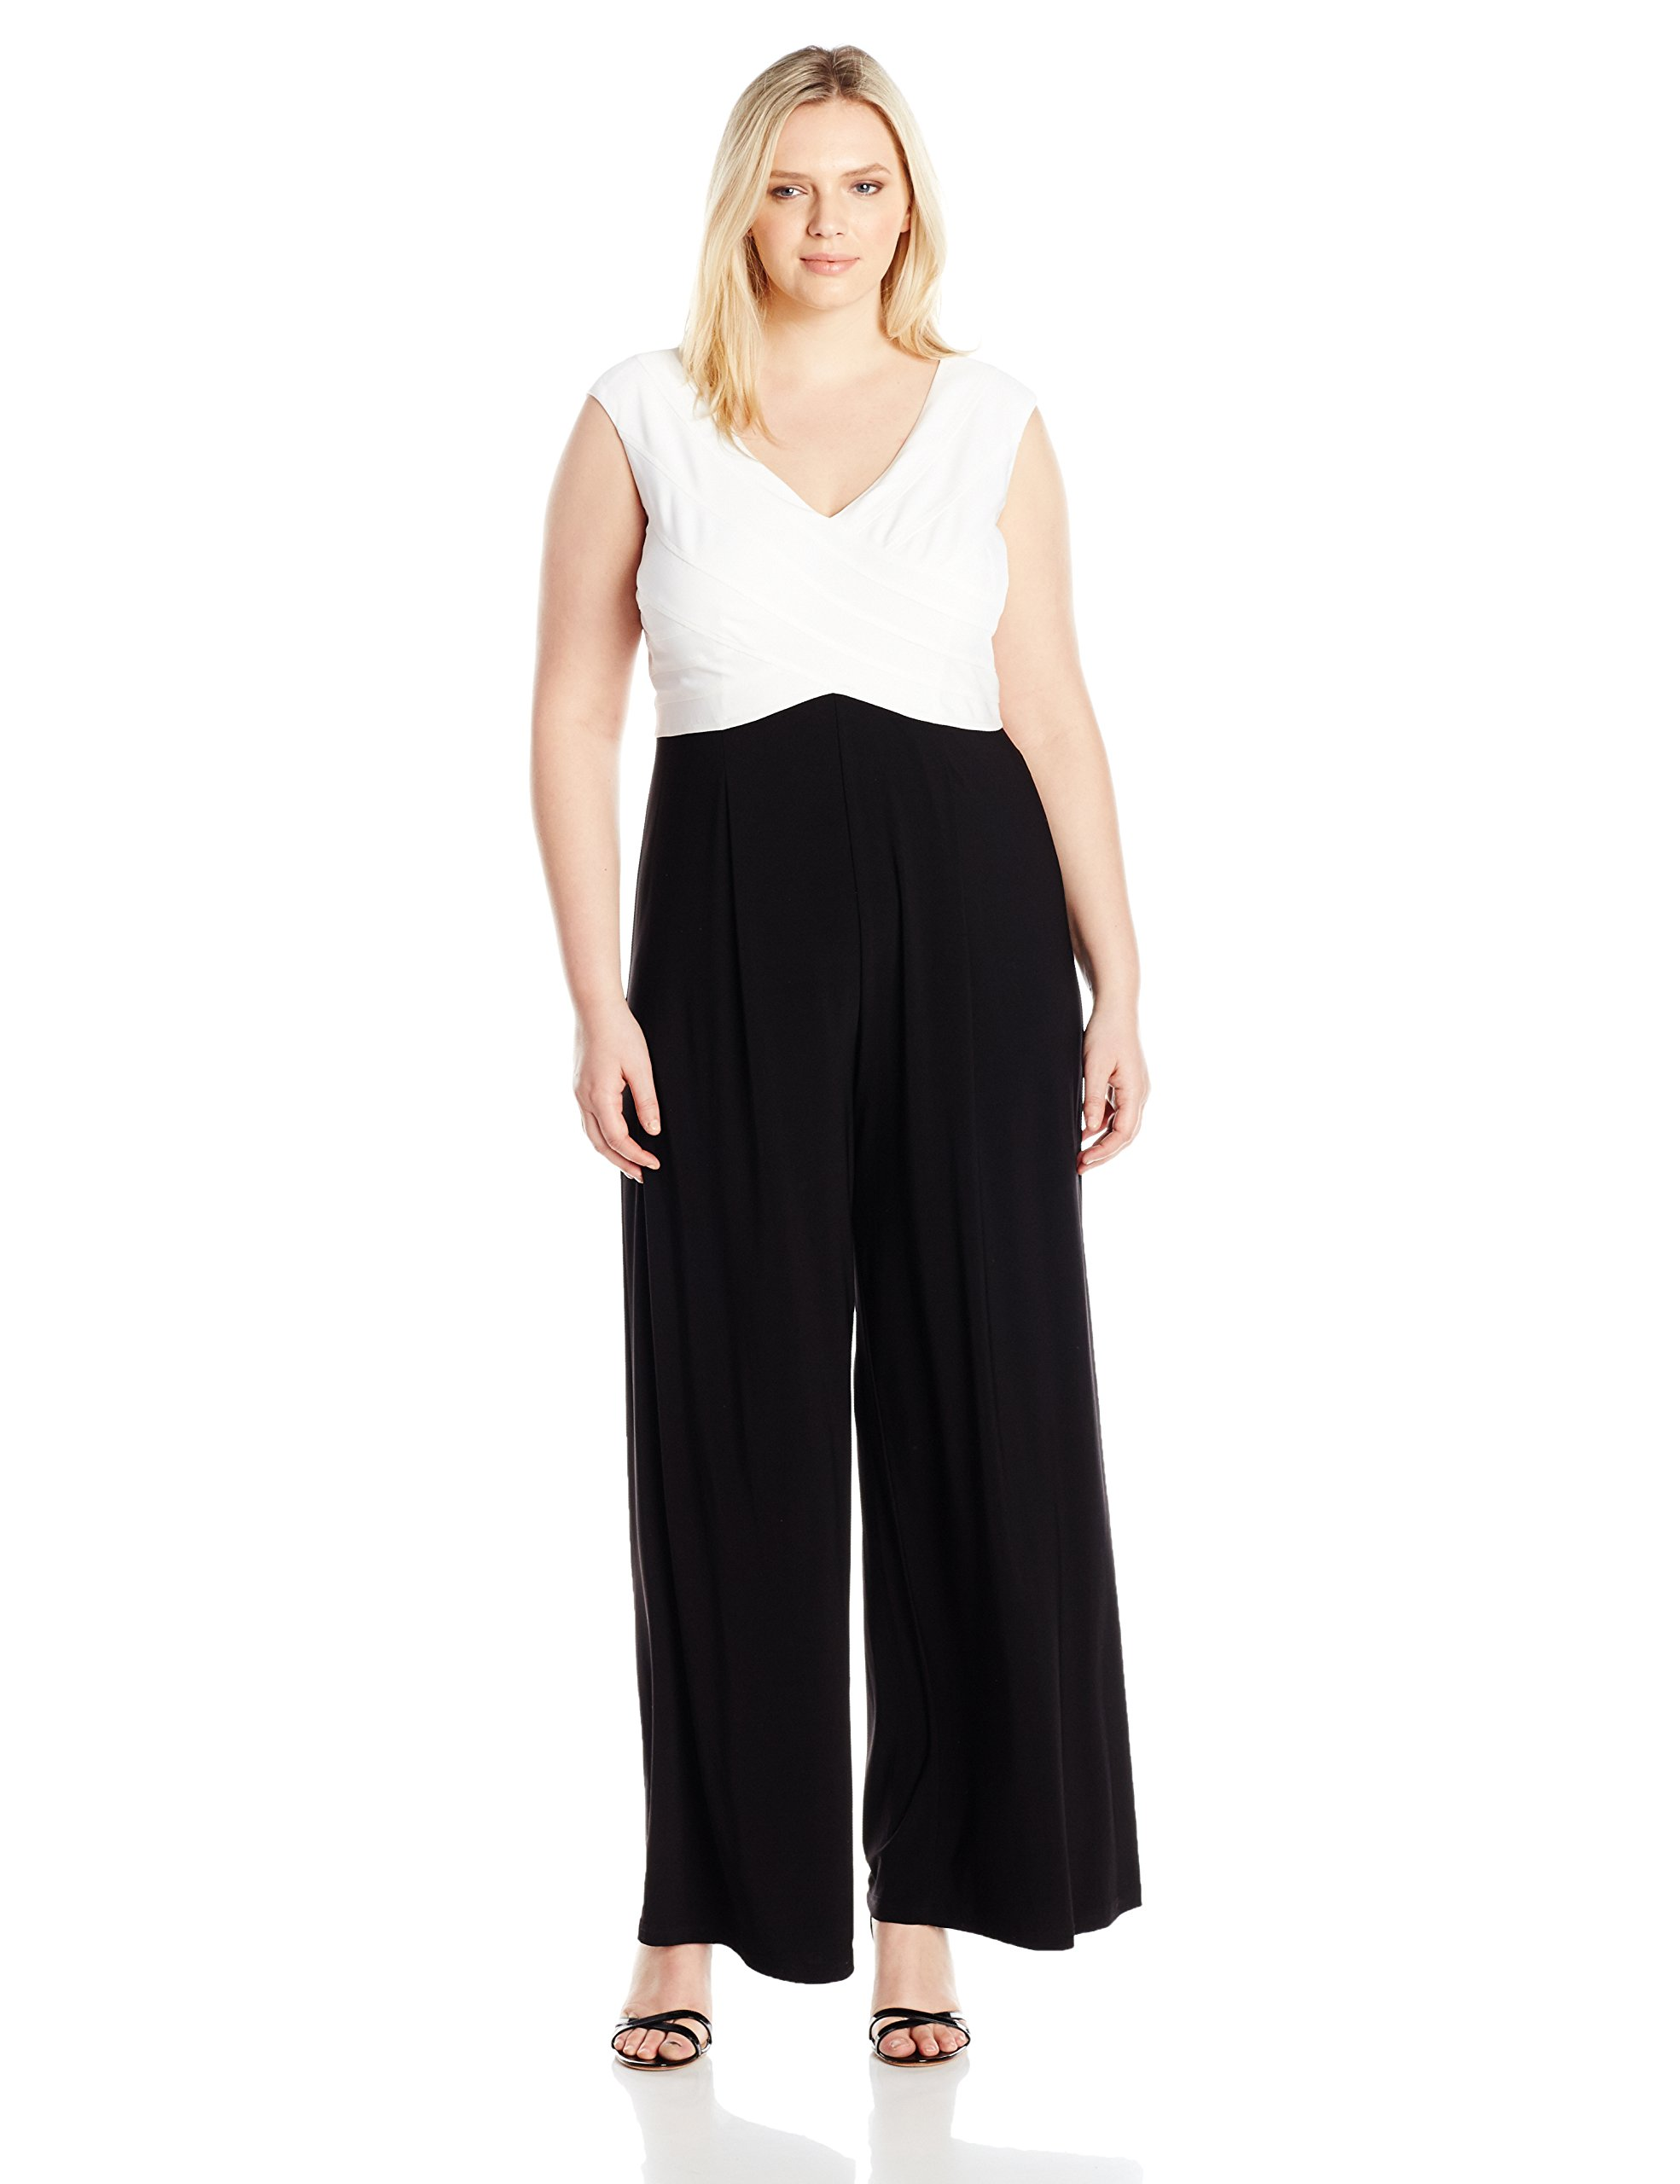 Adrianna Papell Women's Plus Size Colorblocked Matte Jersey Jumpsuit With Banded Top, Ivory/Black, 16W